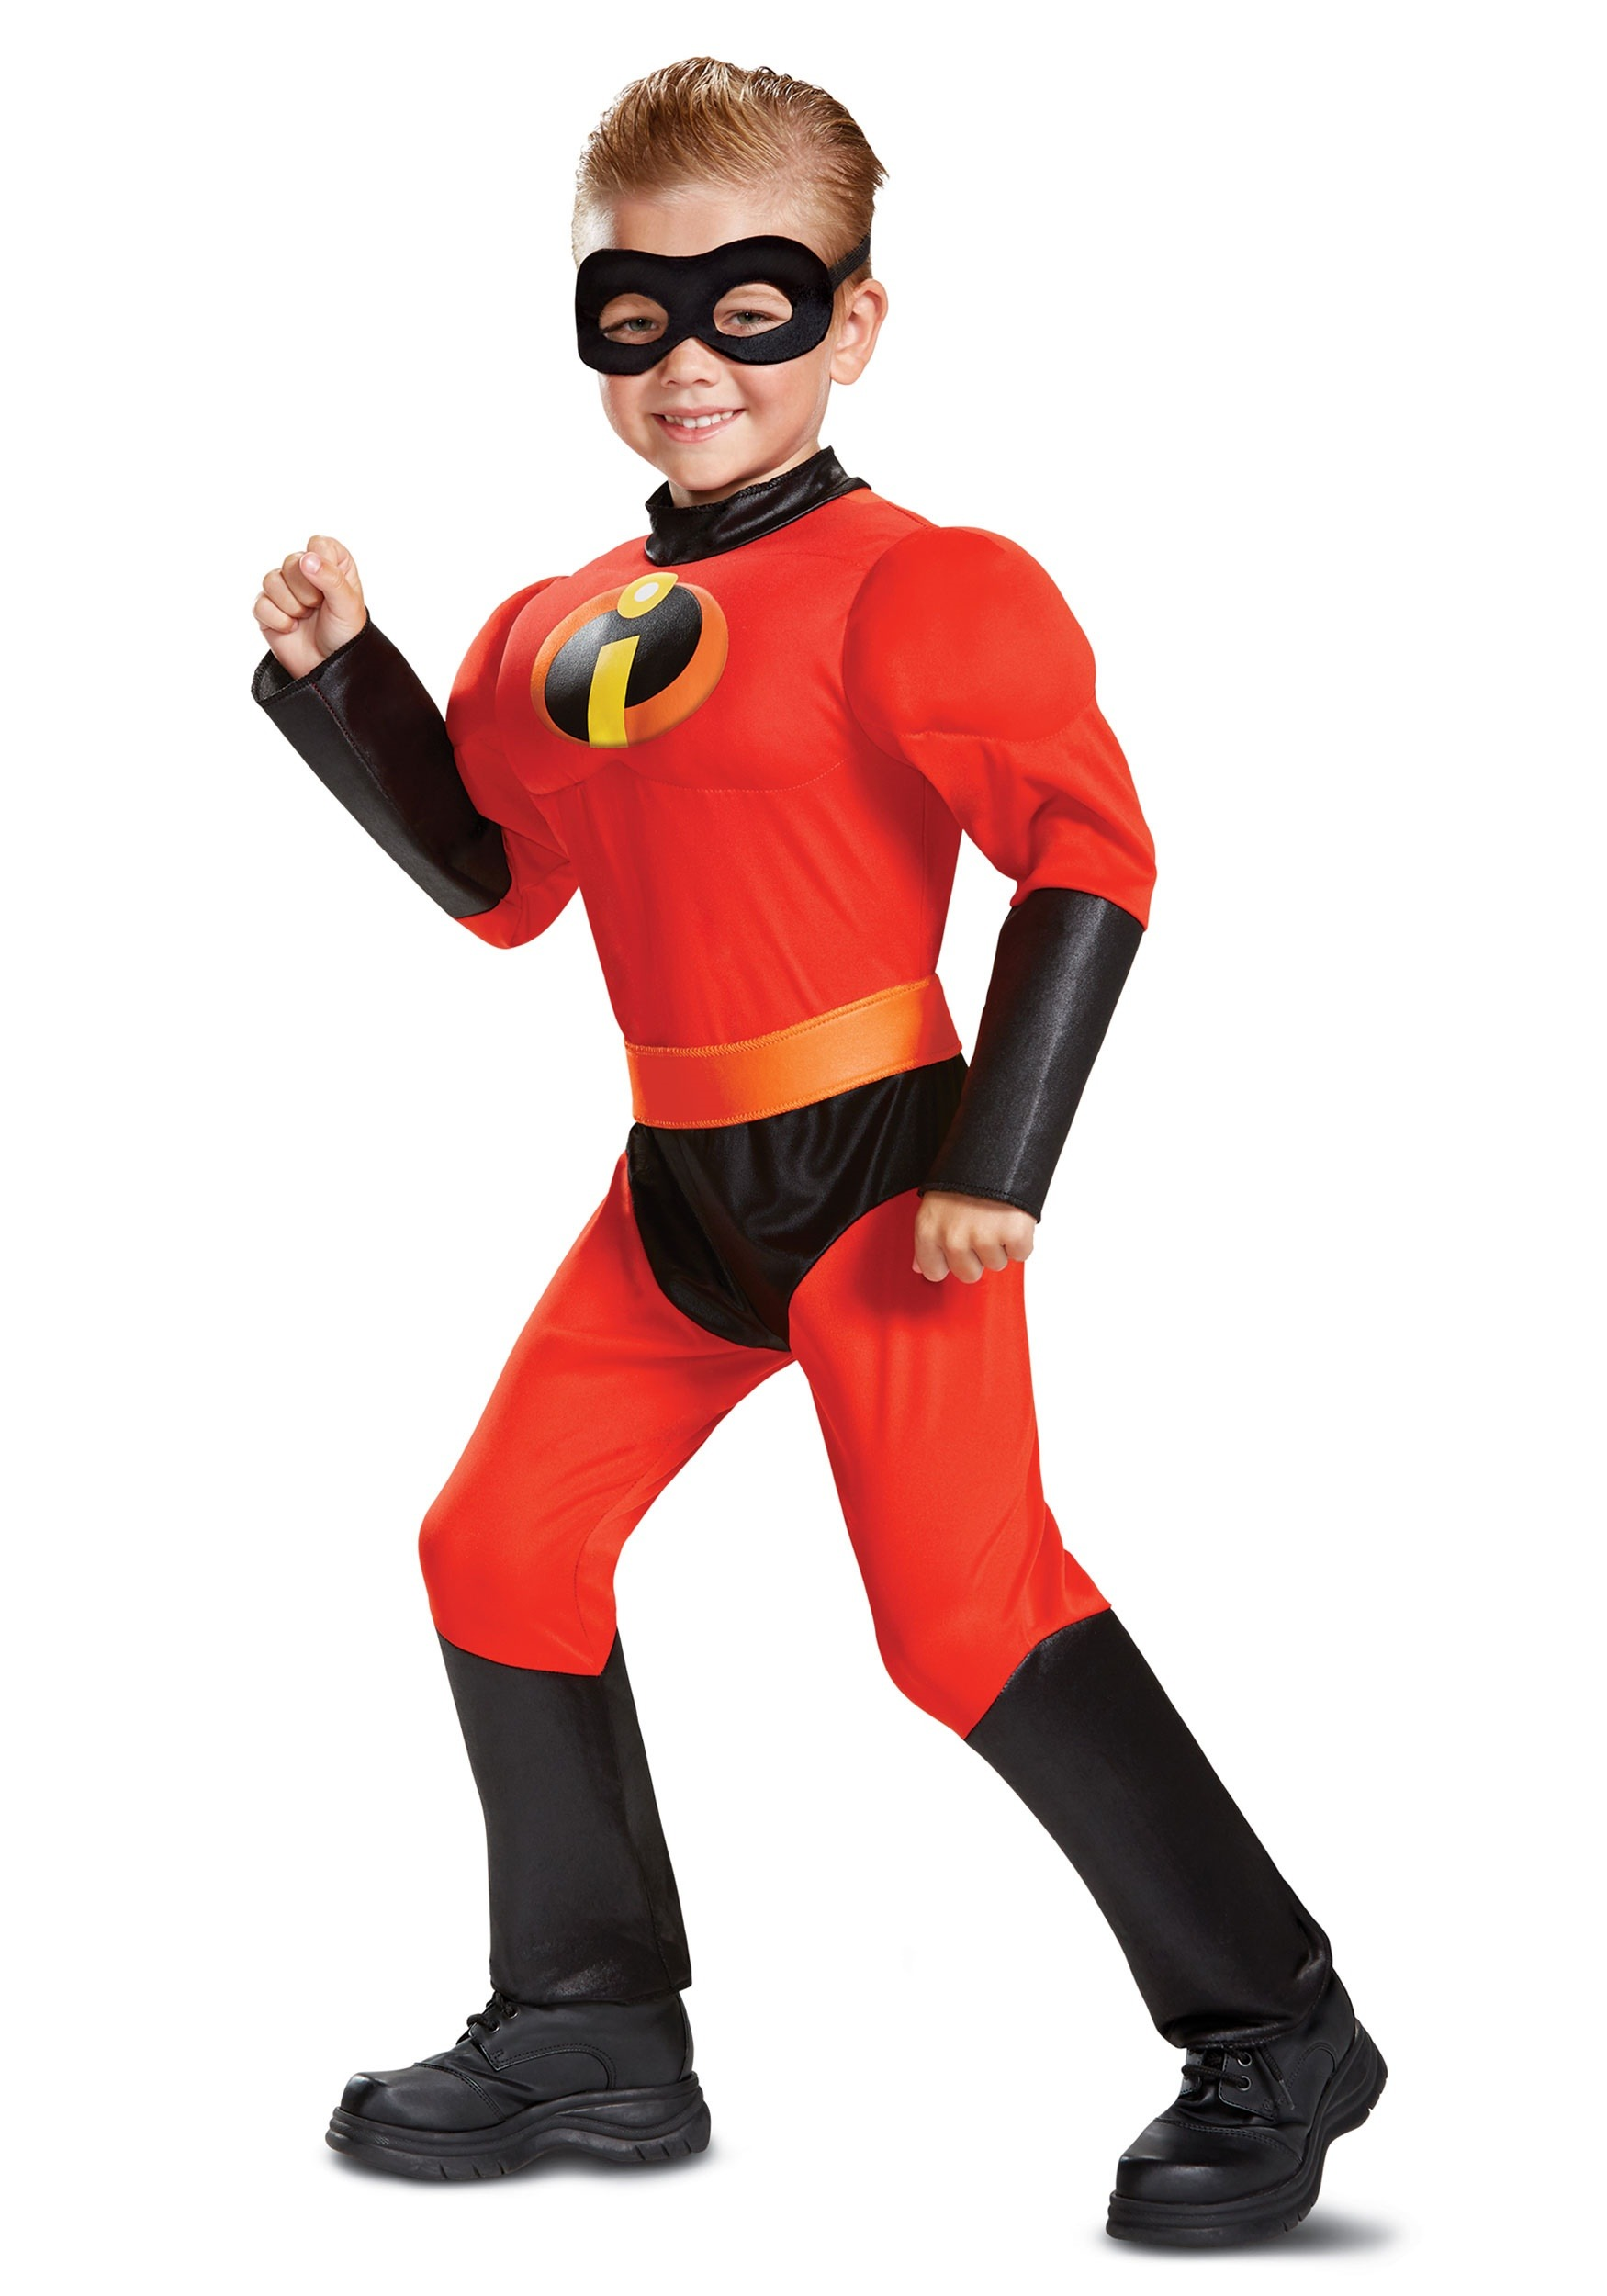 Disney Incredibles 2 Dash Classic 3T-4T Toddler Boys Costume Muscle  Licensed | eBay